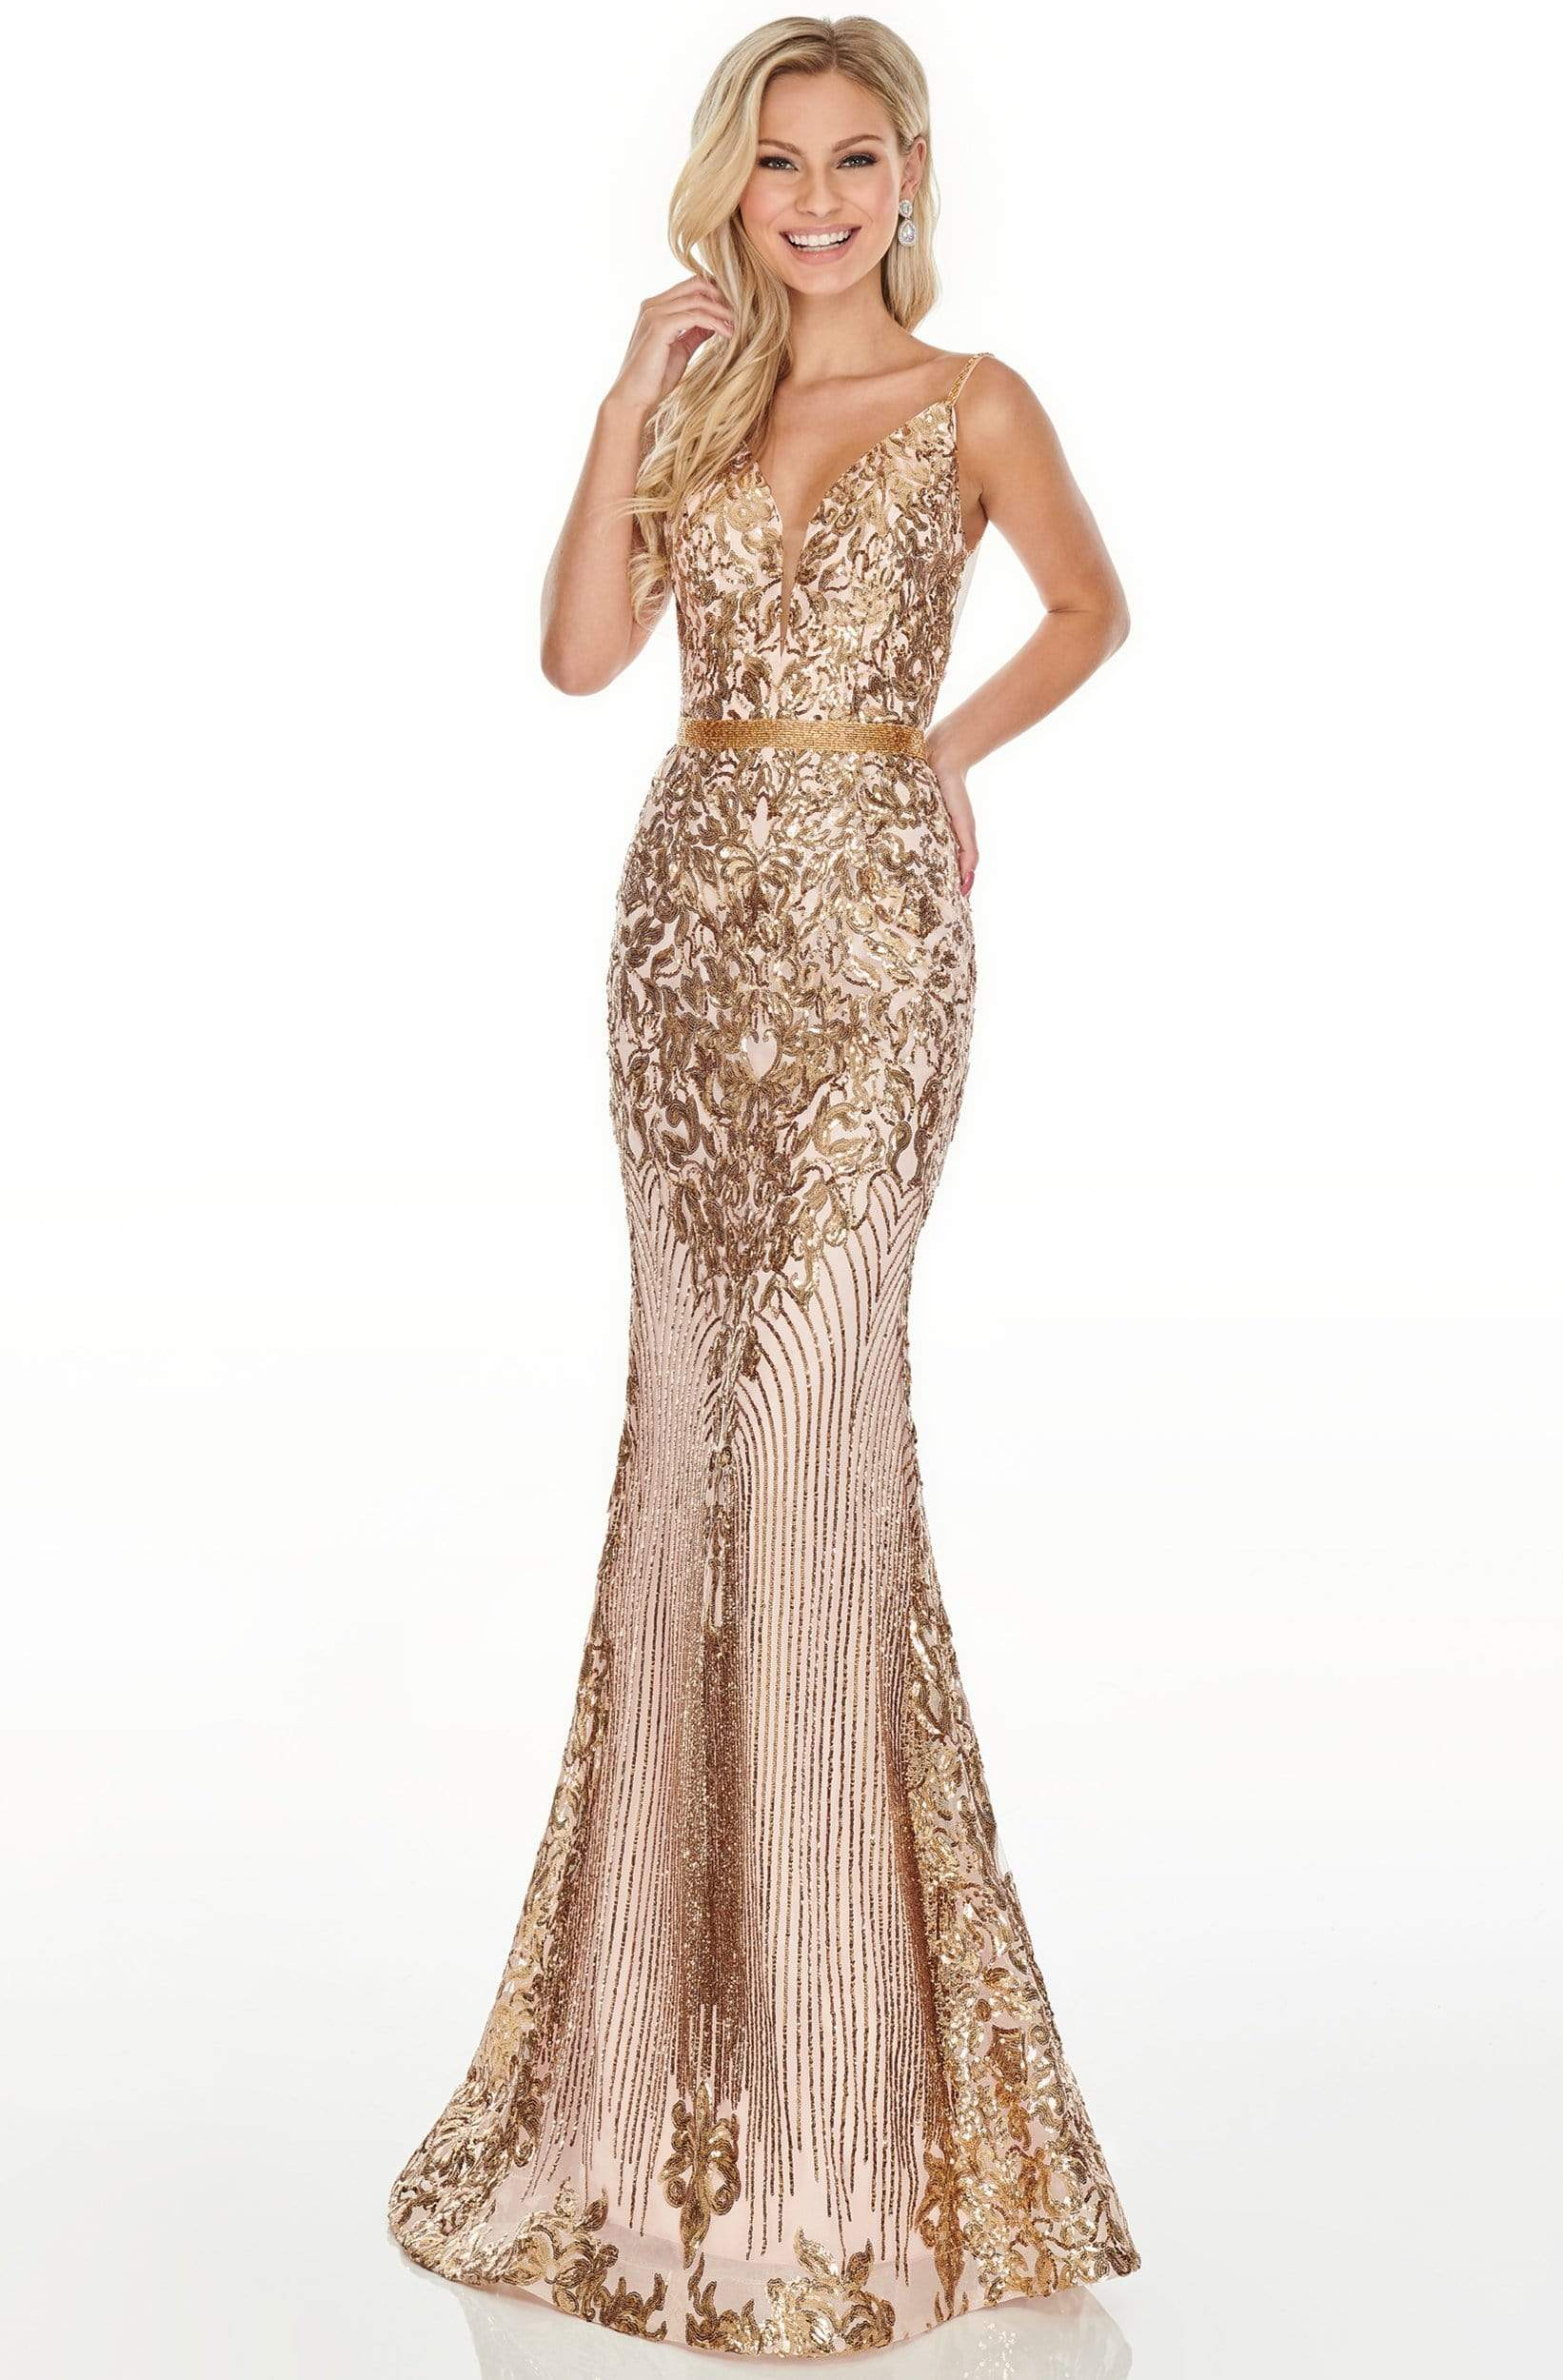 Rachel Allan Prom - 7177 Sequined Deep V-Neck Trumpet Dress Prom Dresses 0 / Blush Gold